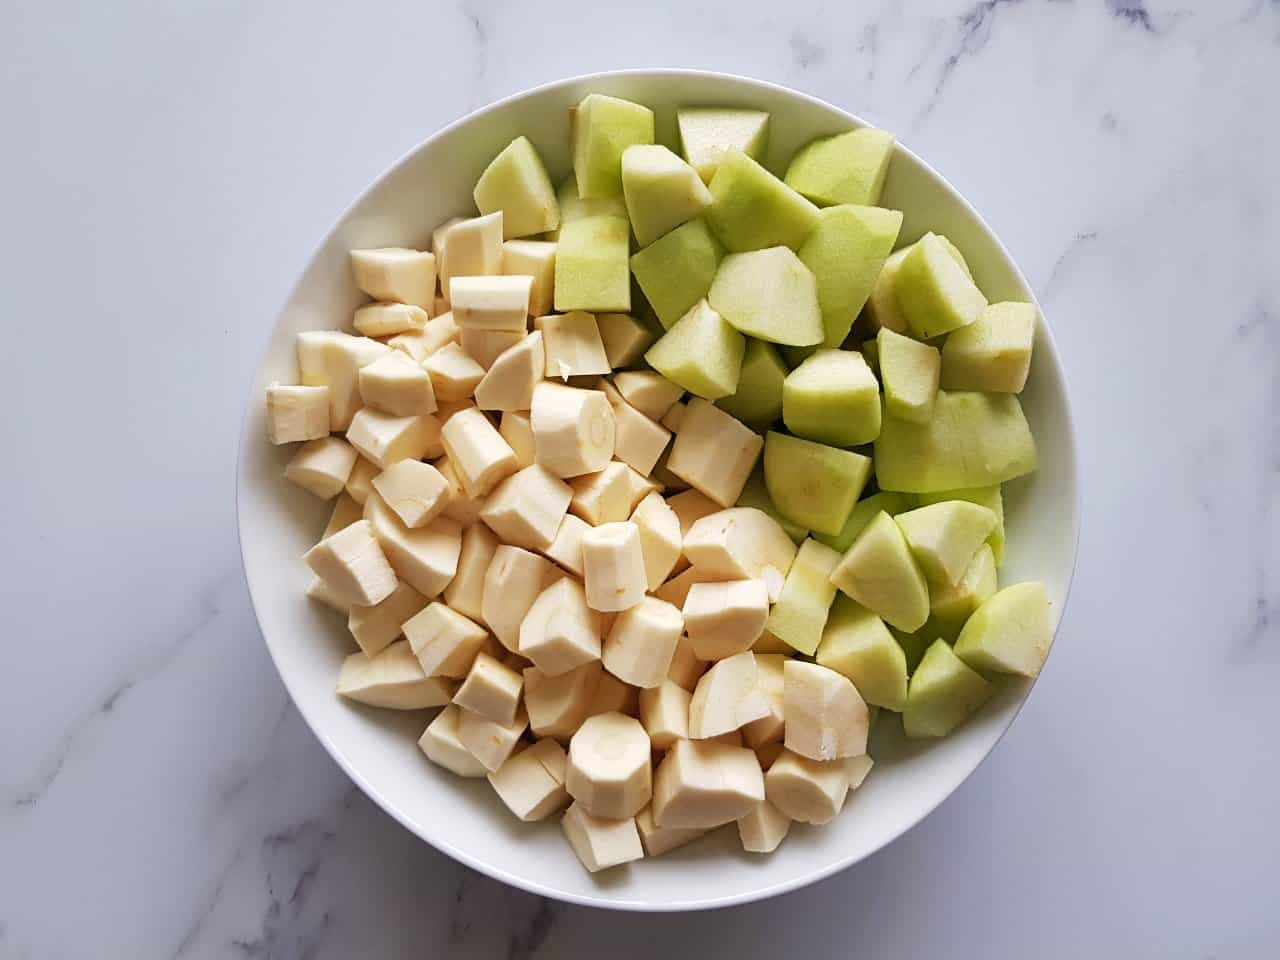 Diced parsnips and apples in a white bowl sat on a table.